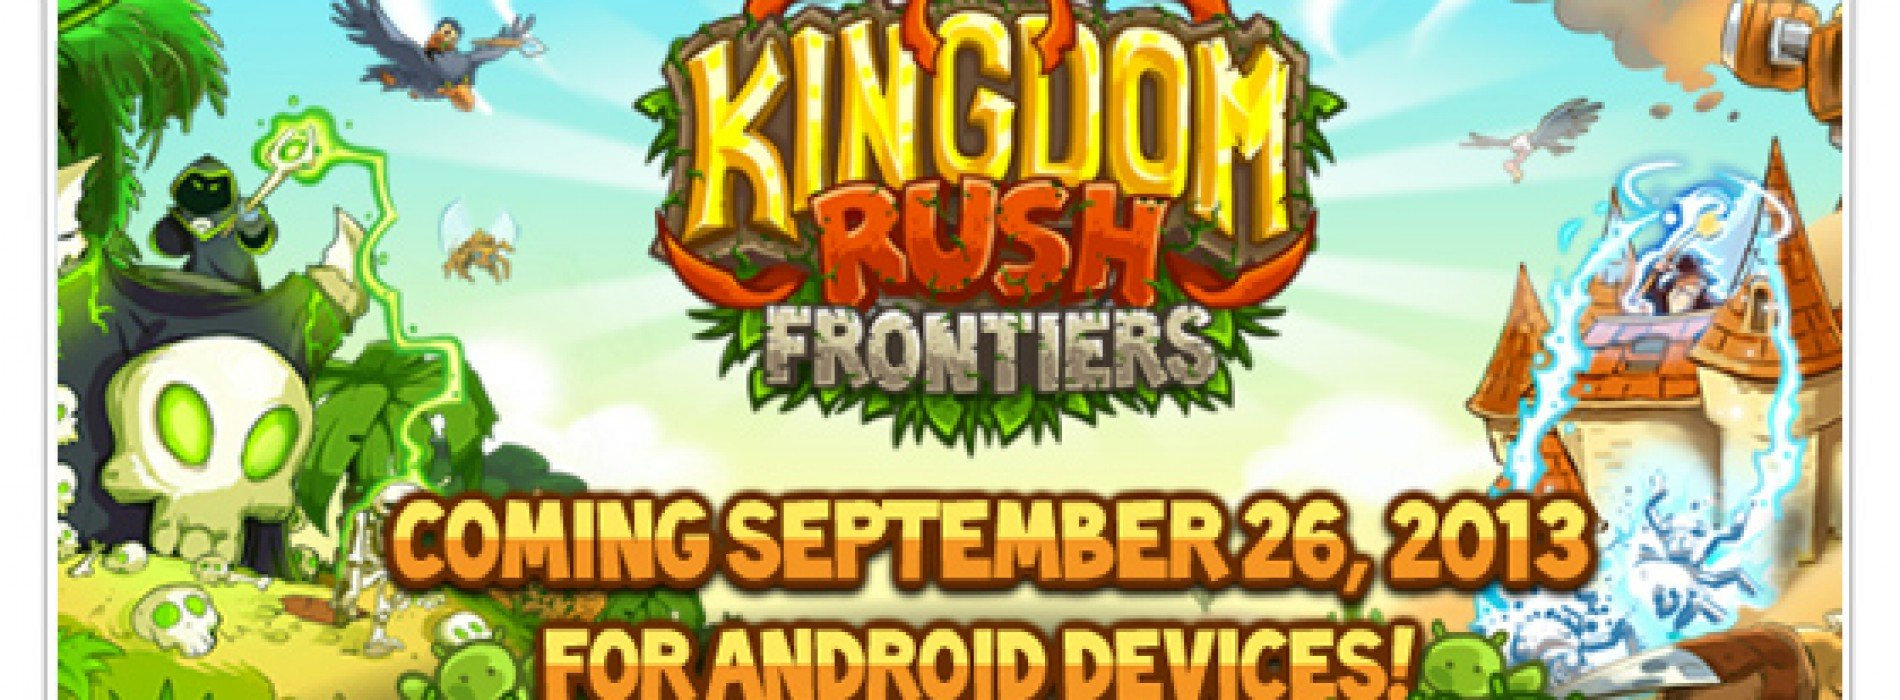 Tower defense game Kingdom Rush: Frontiers arrives September 26